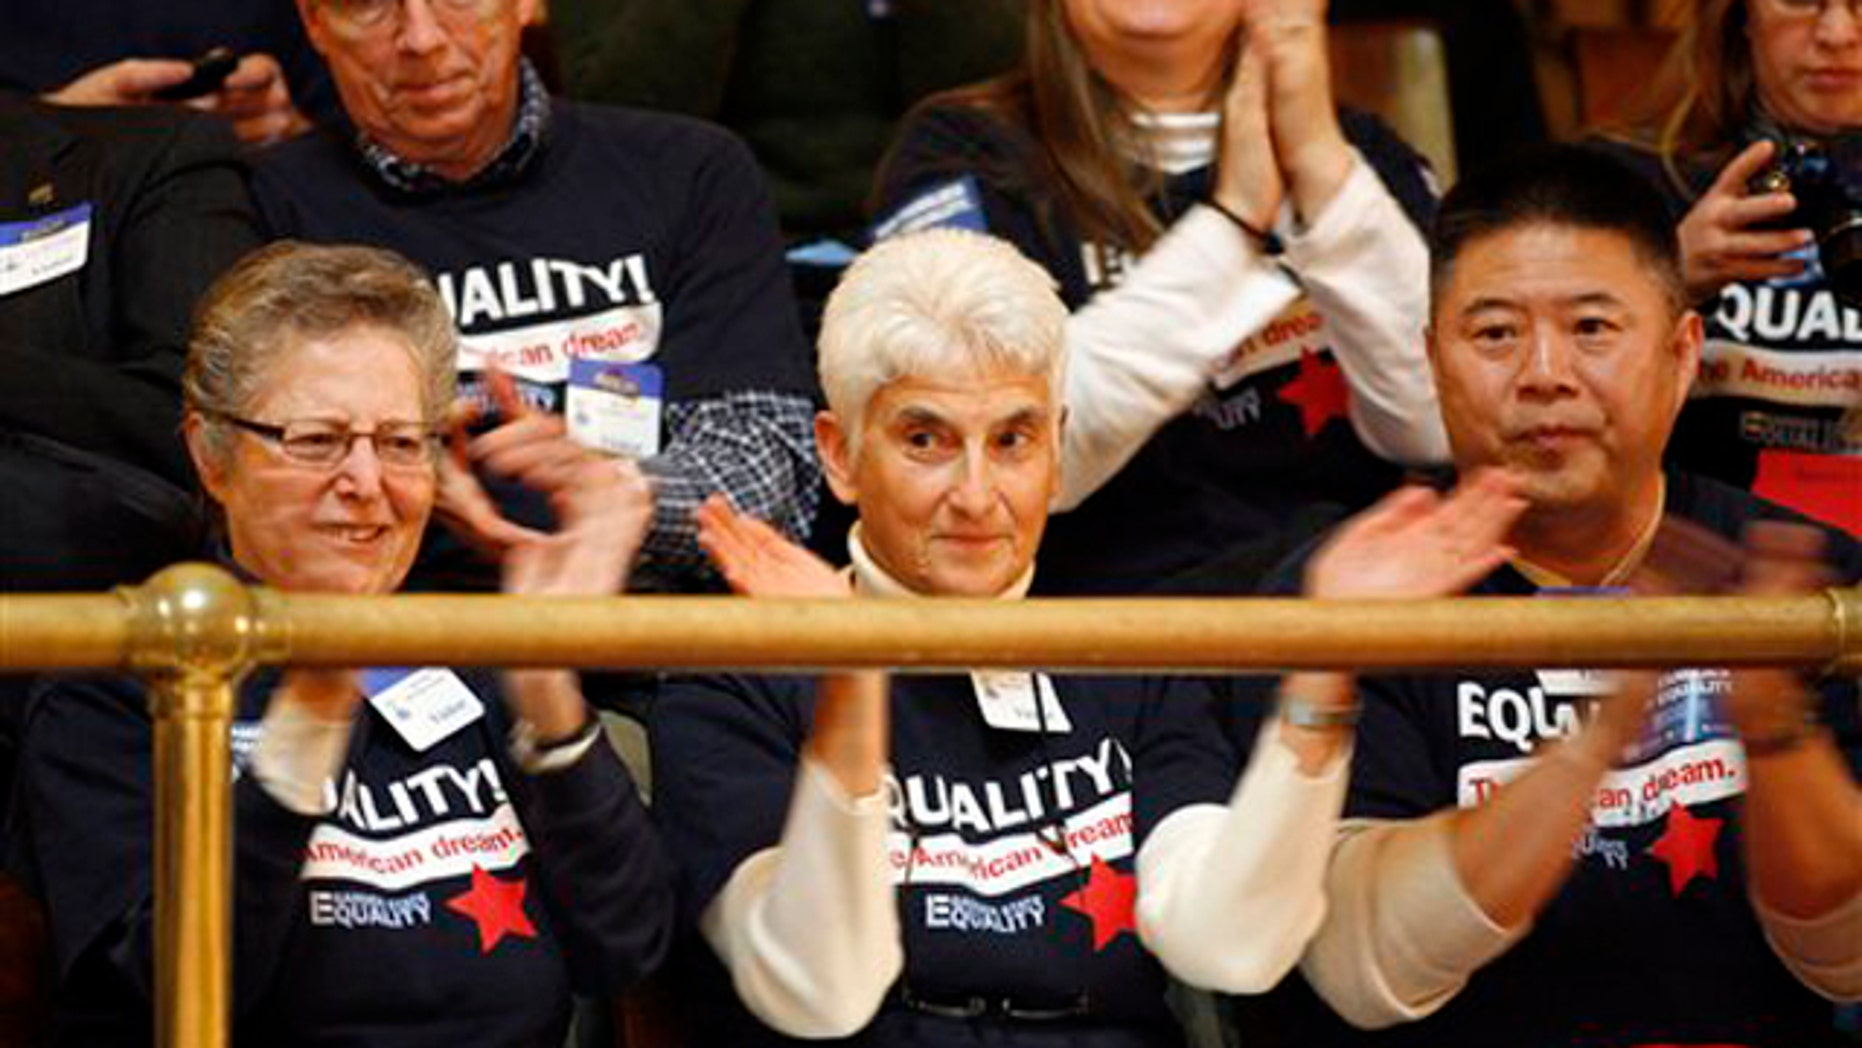 Feb. 13, 2012: Spectators in the balcony applaud the passage of the same-sex marriage bill in the New Jersey State Senate in Trenton. Gov. Chris Christie later vetoed the bill.